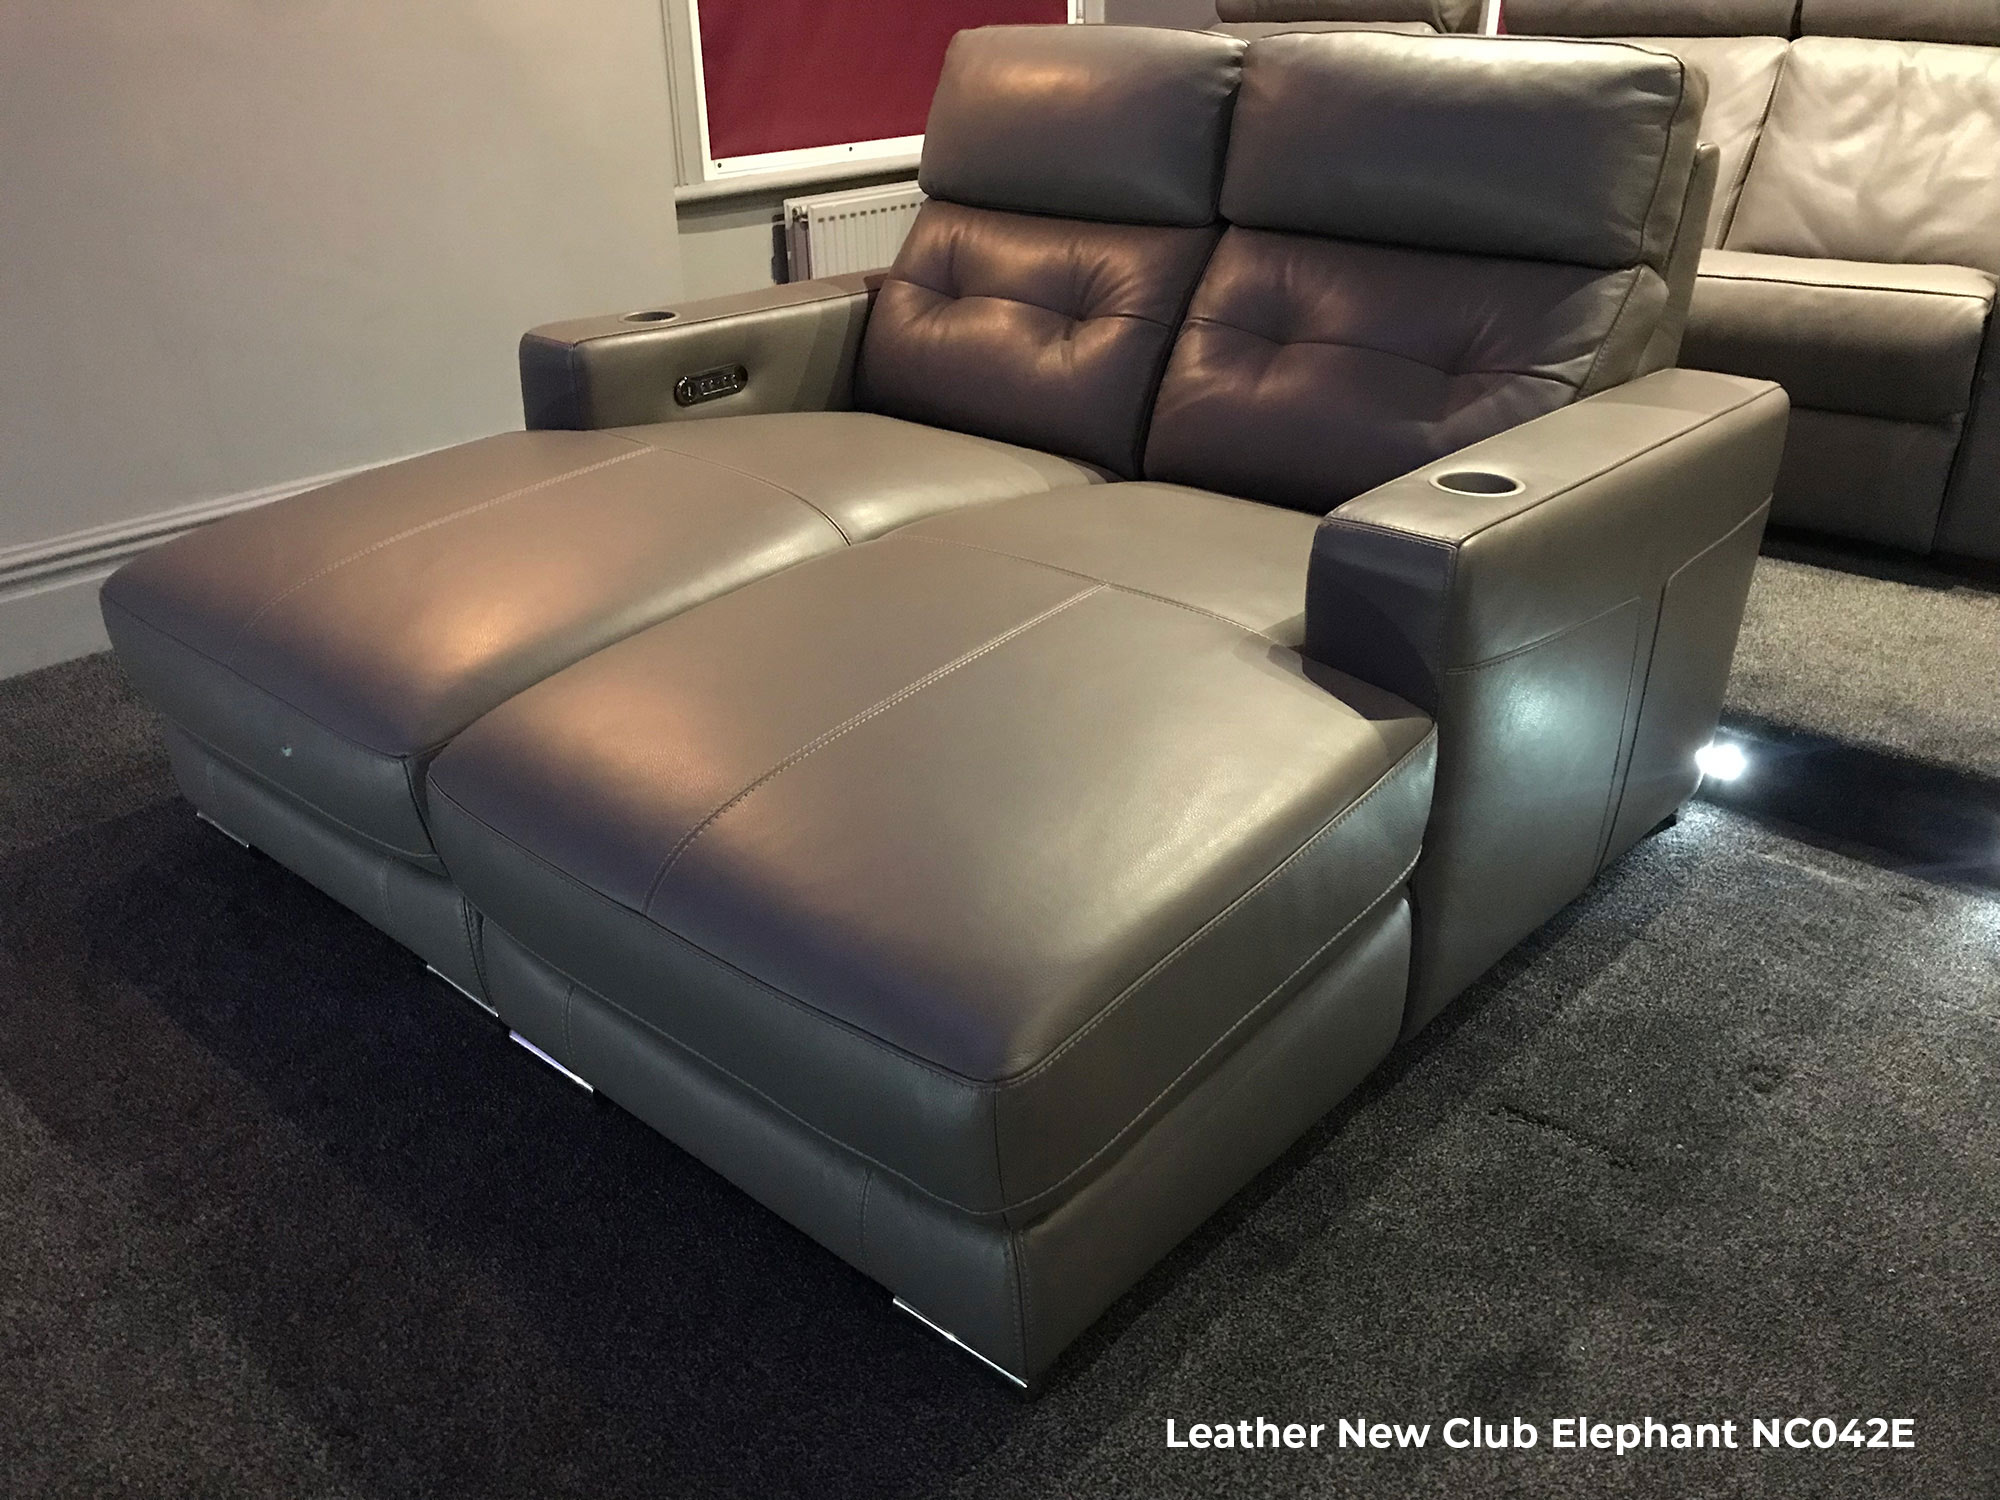 FrontRow™ Serenity Home Cinema Seating 2 seat couch